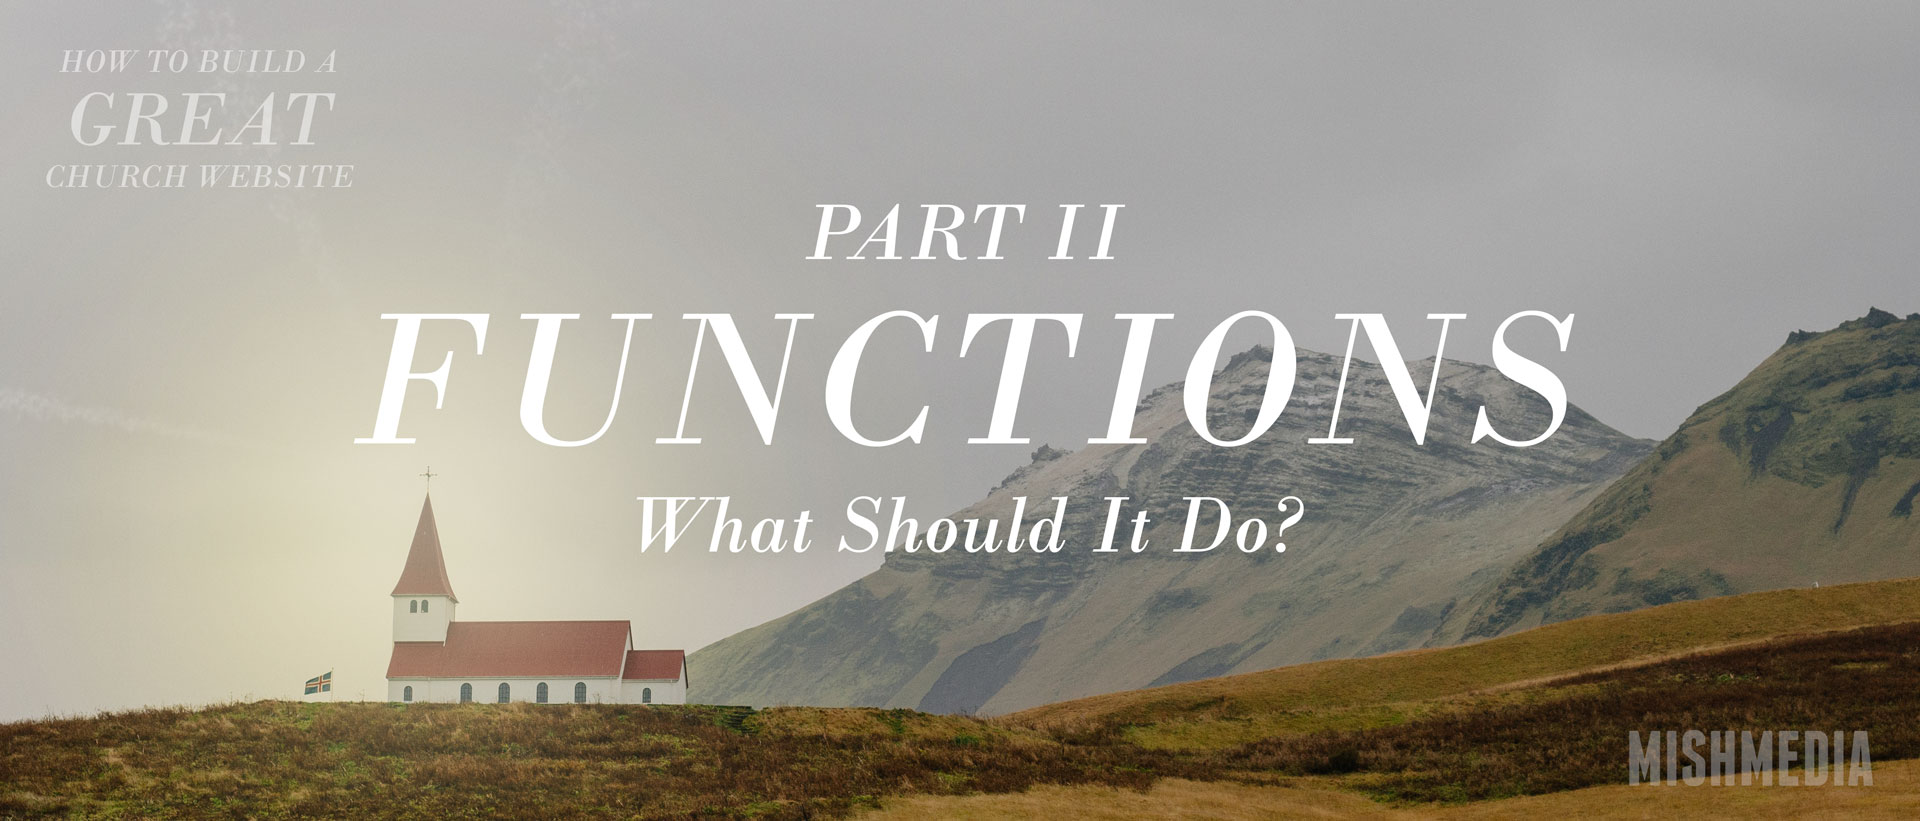 How To Build a Great Church Website - Part 2: Functions